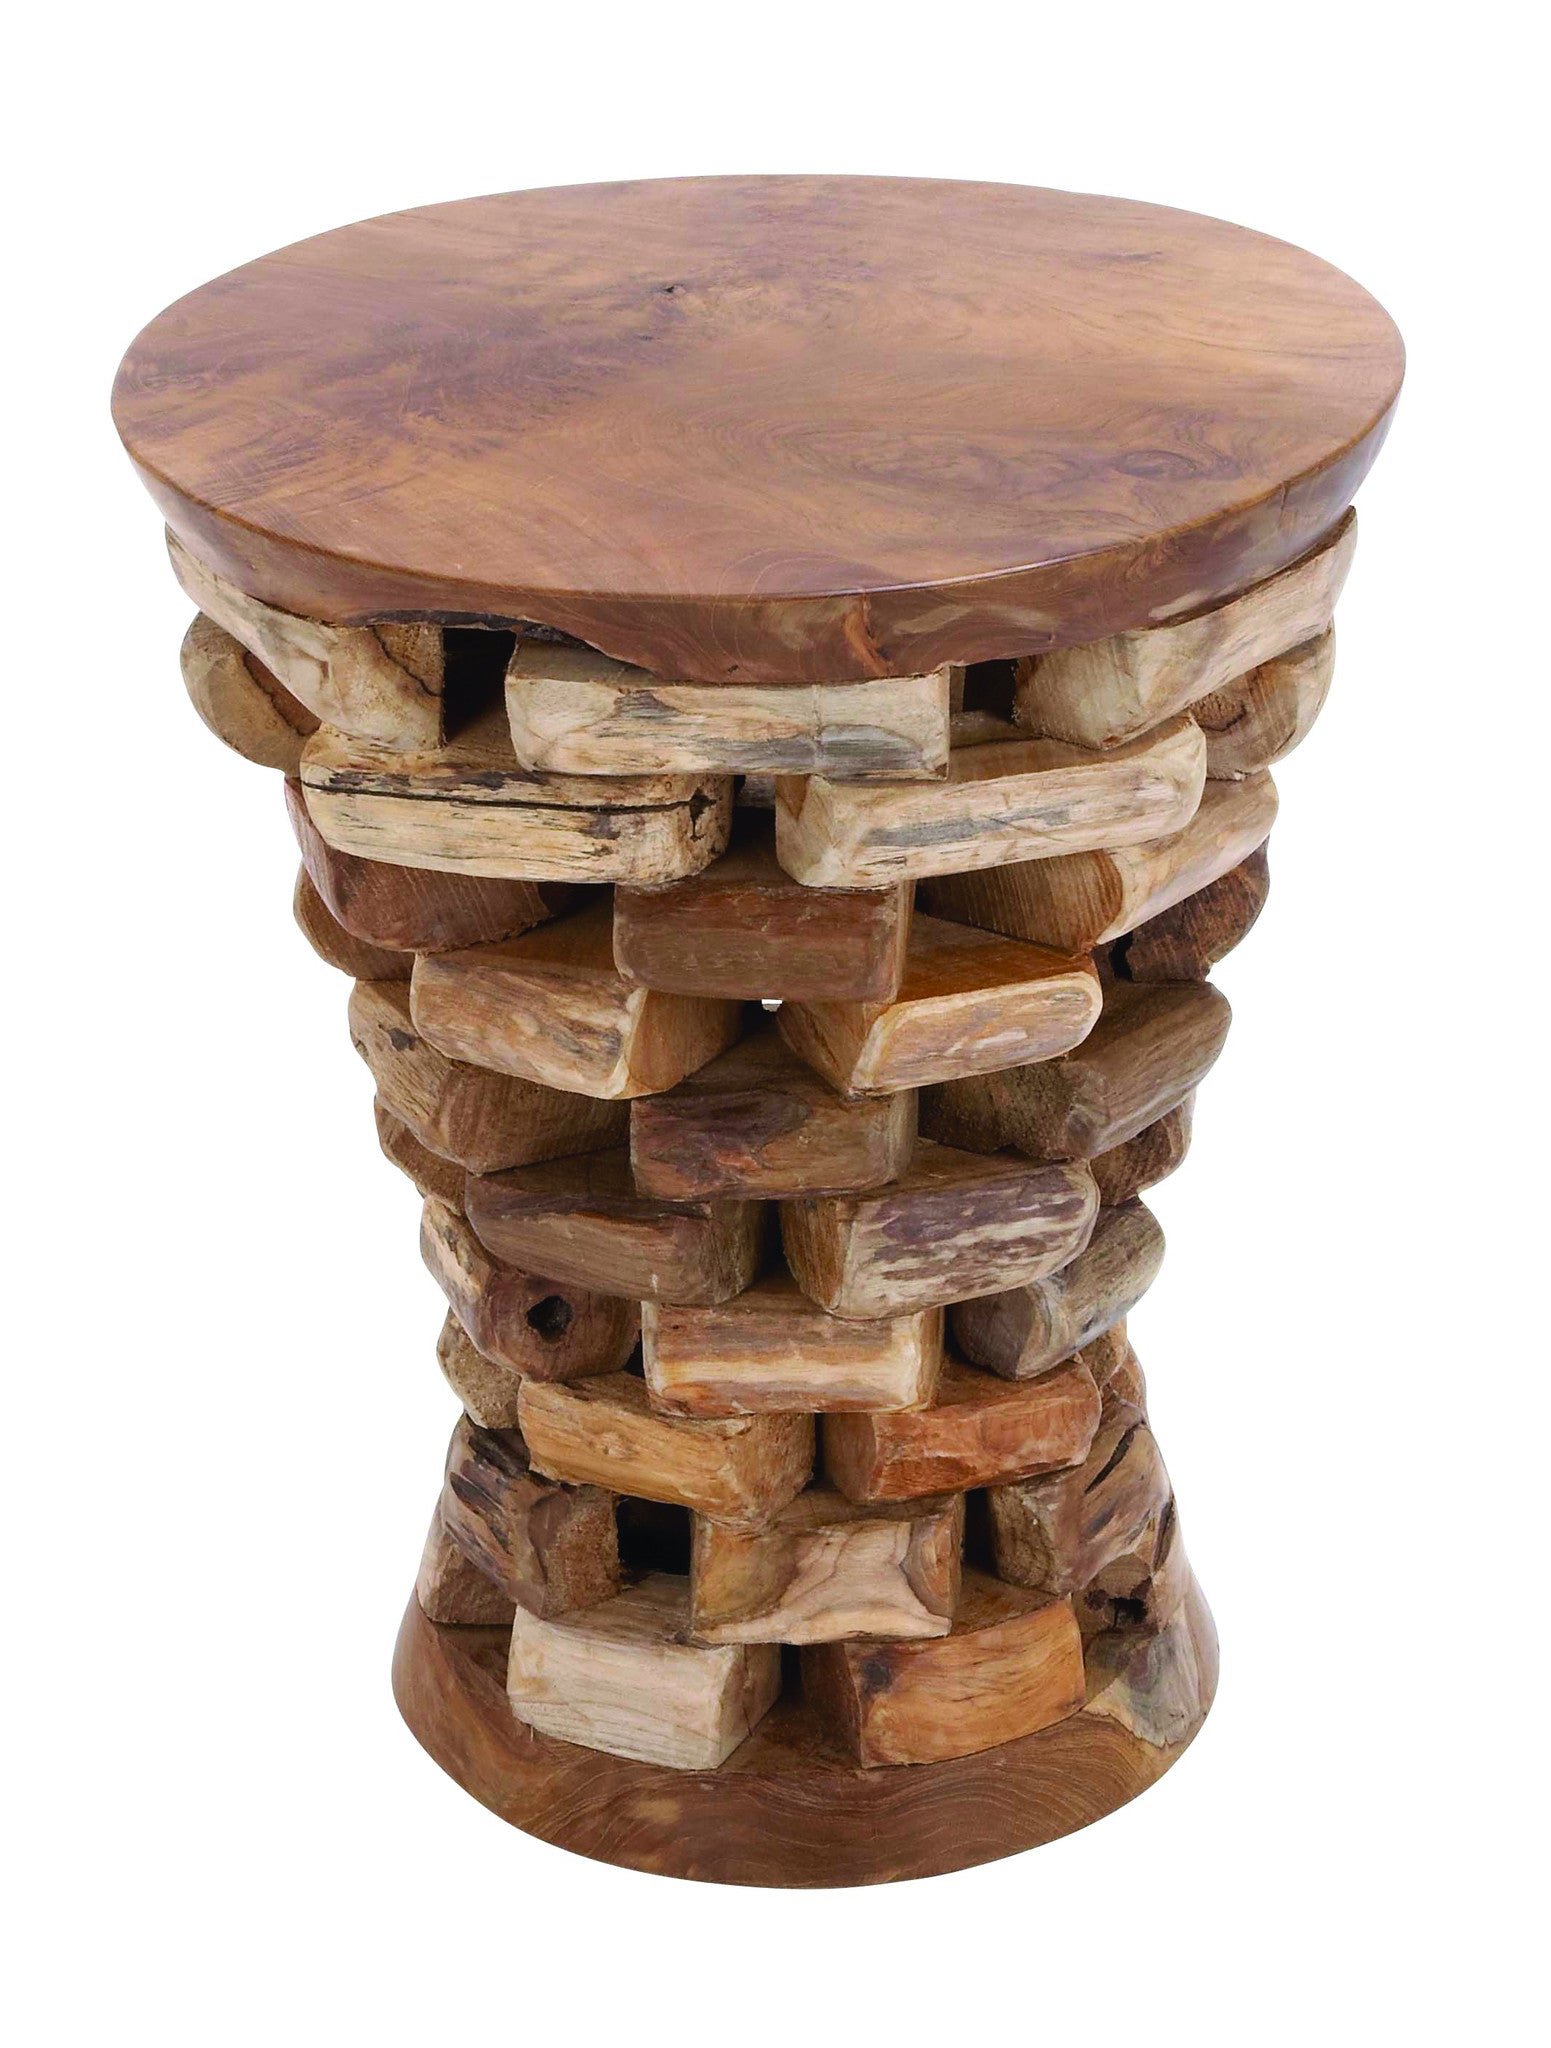 Round Shaped Teak Wooden Accent Table In Natural Rich Textures